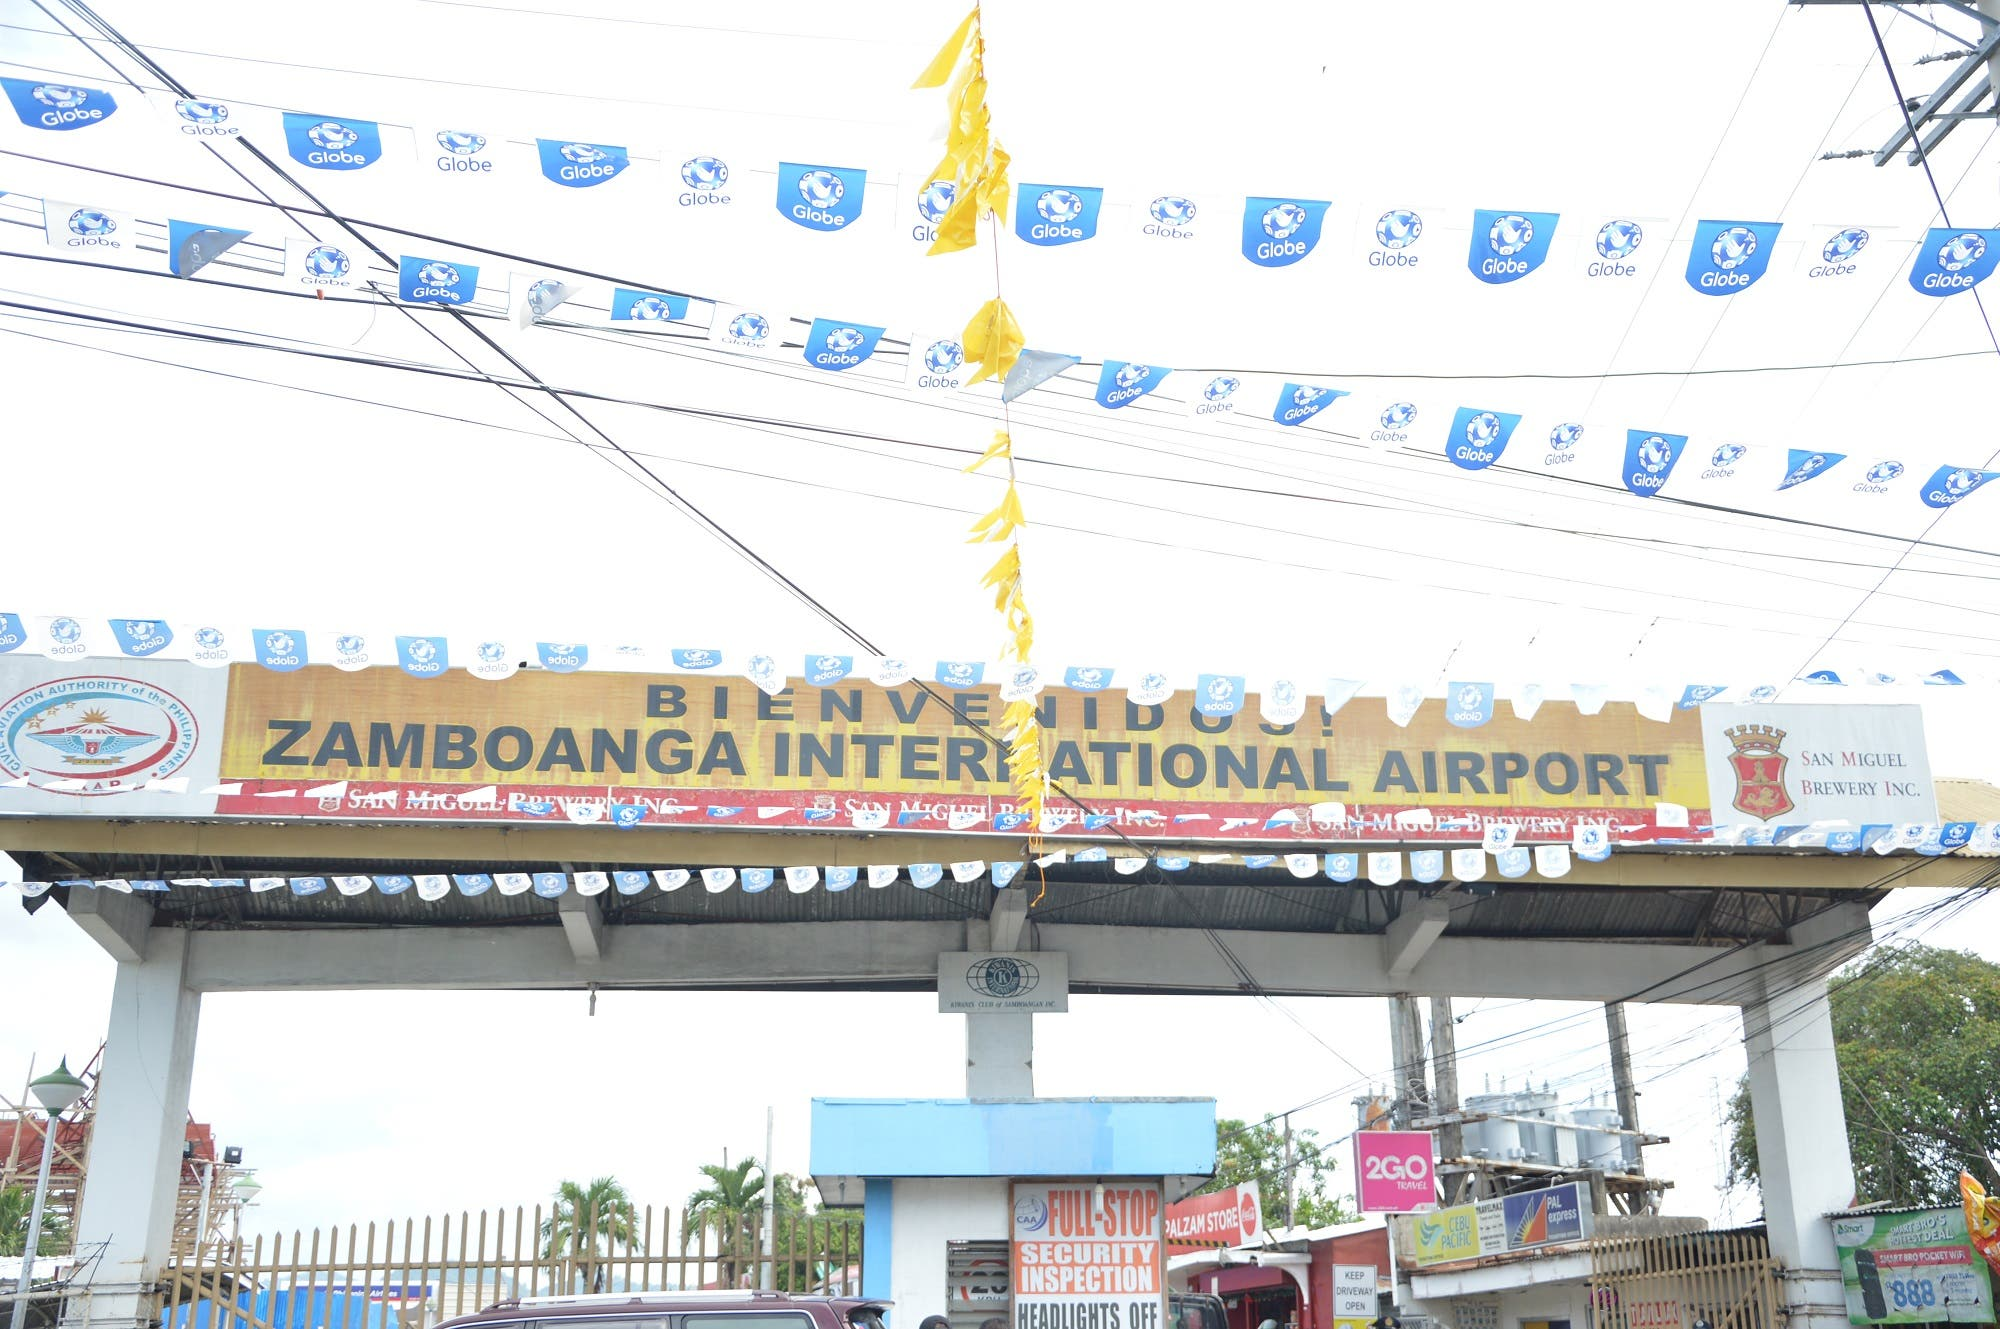 The Zamboanga International Airport in the Southern Philippines remains to be the gateway of Muslim-Filipino professionals in Mindanao to Middle East. (Supplied)